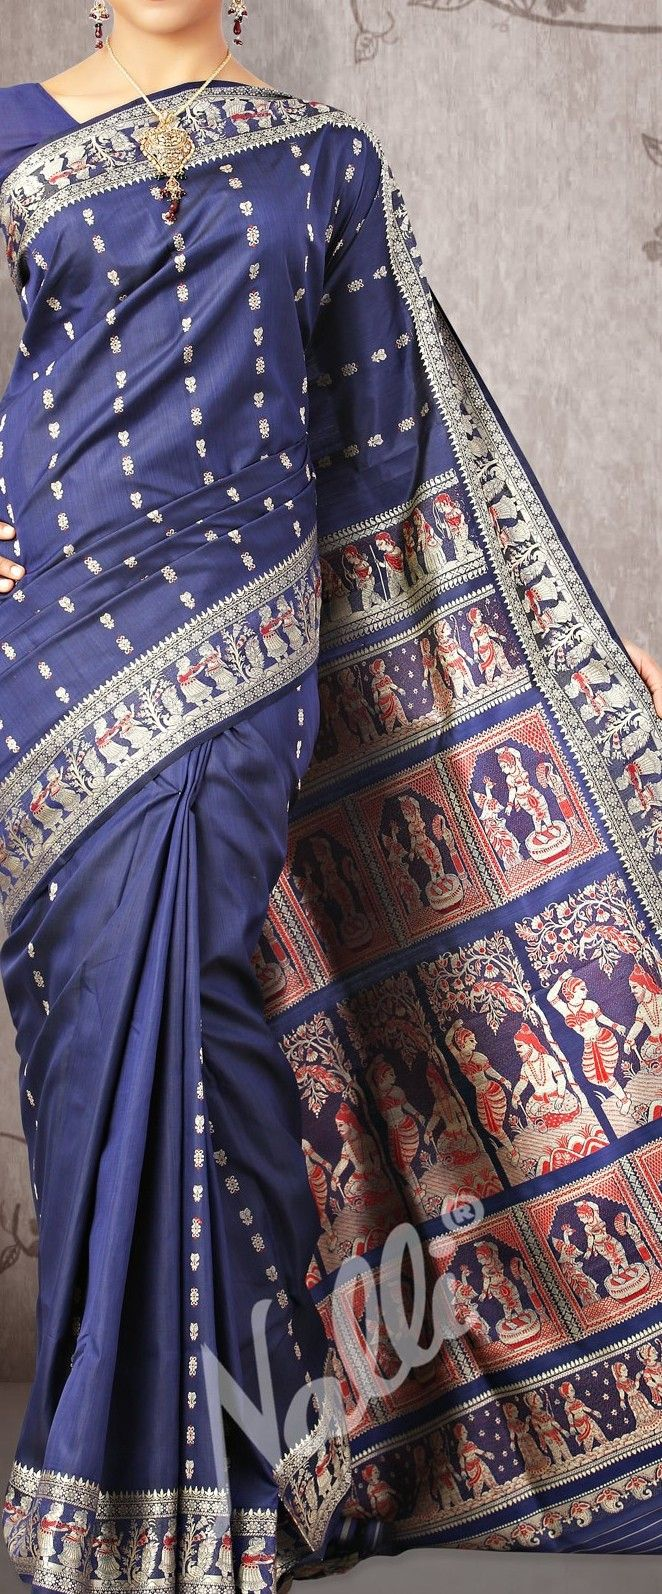 Blouse Meaning In Bengali | Toffee Art